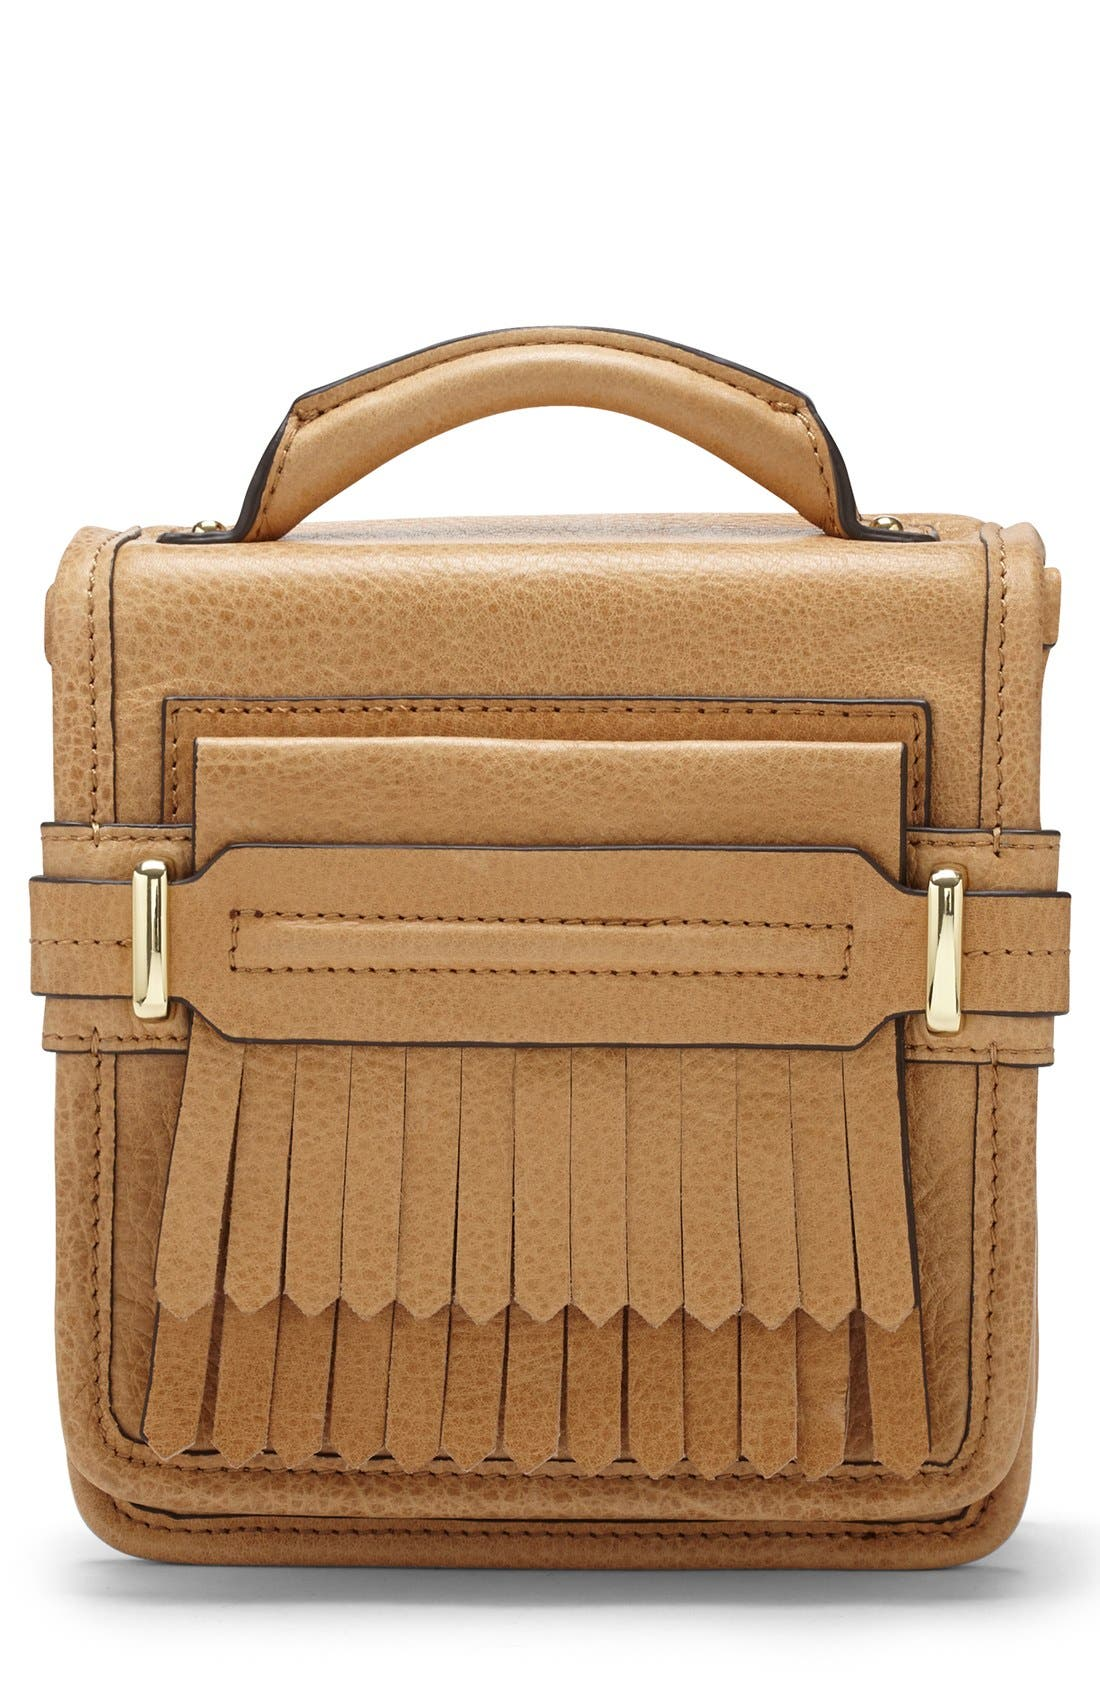 Main Image - Vince Camuto 'Sofia - Small' Fringe Leather Crossbody Bag